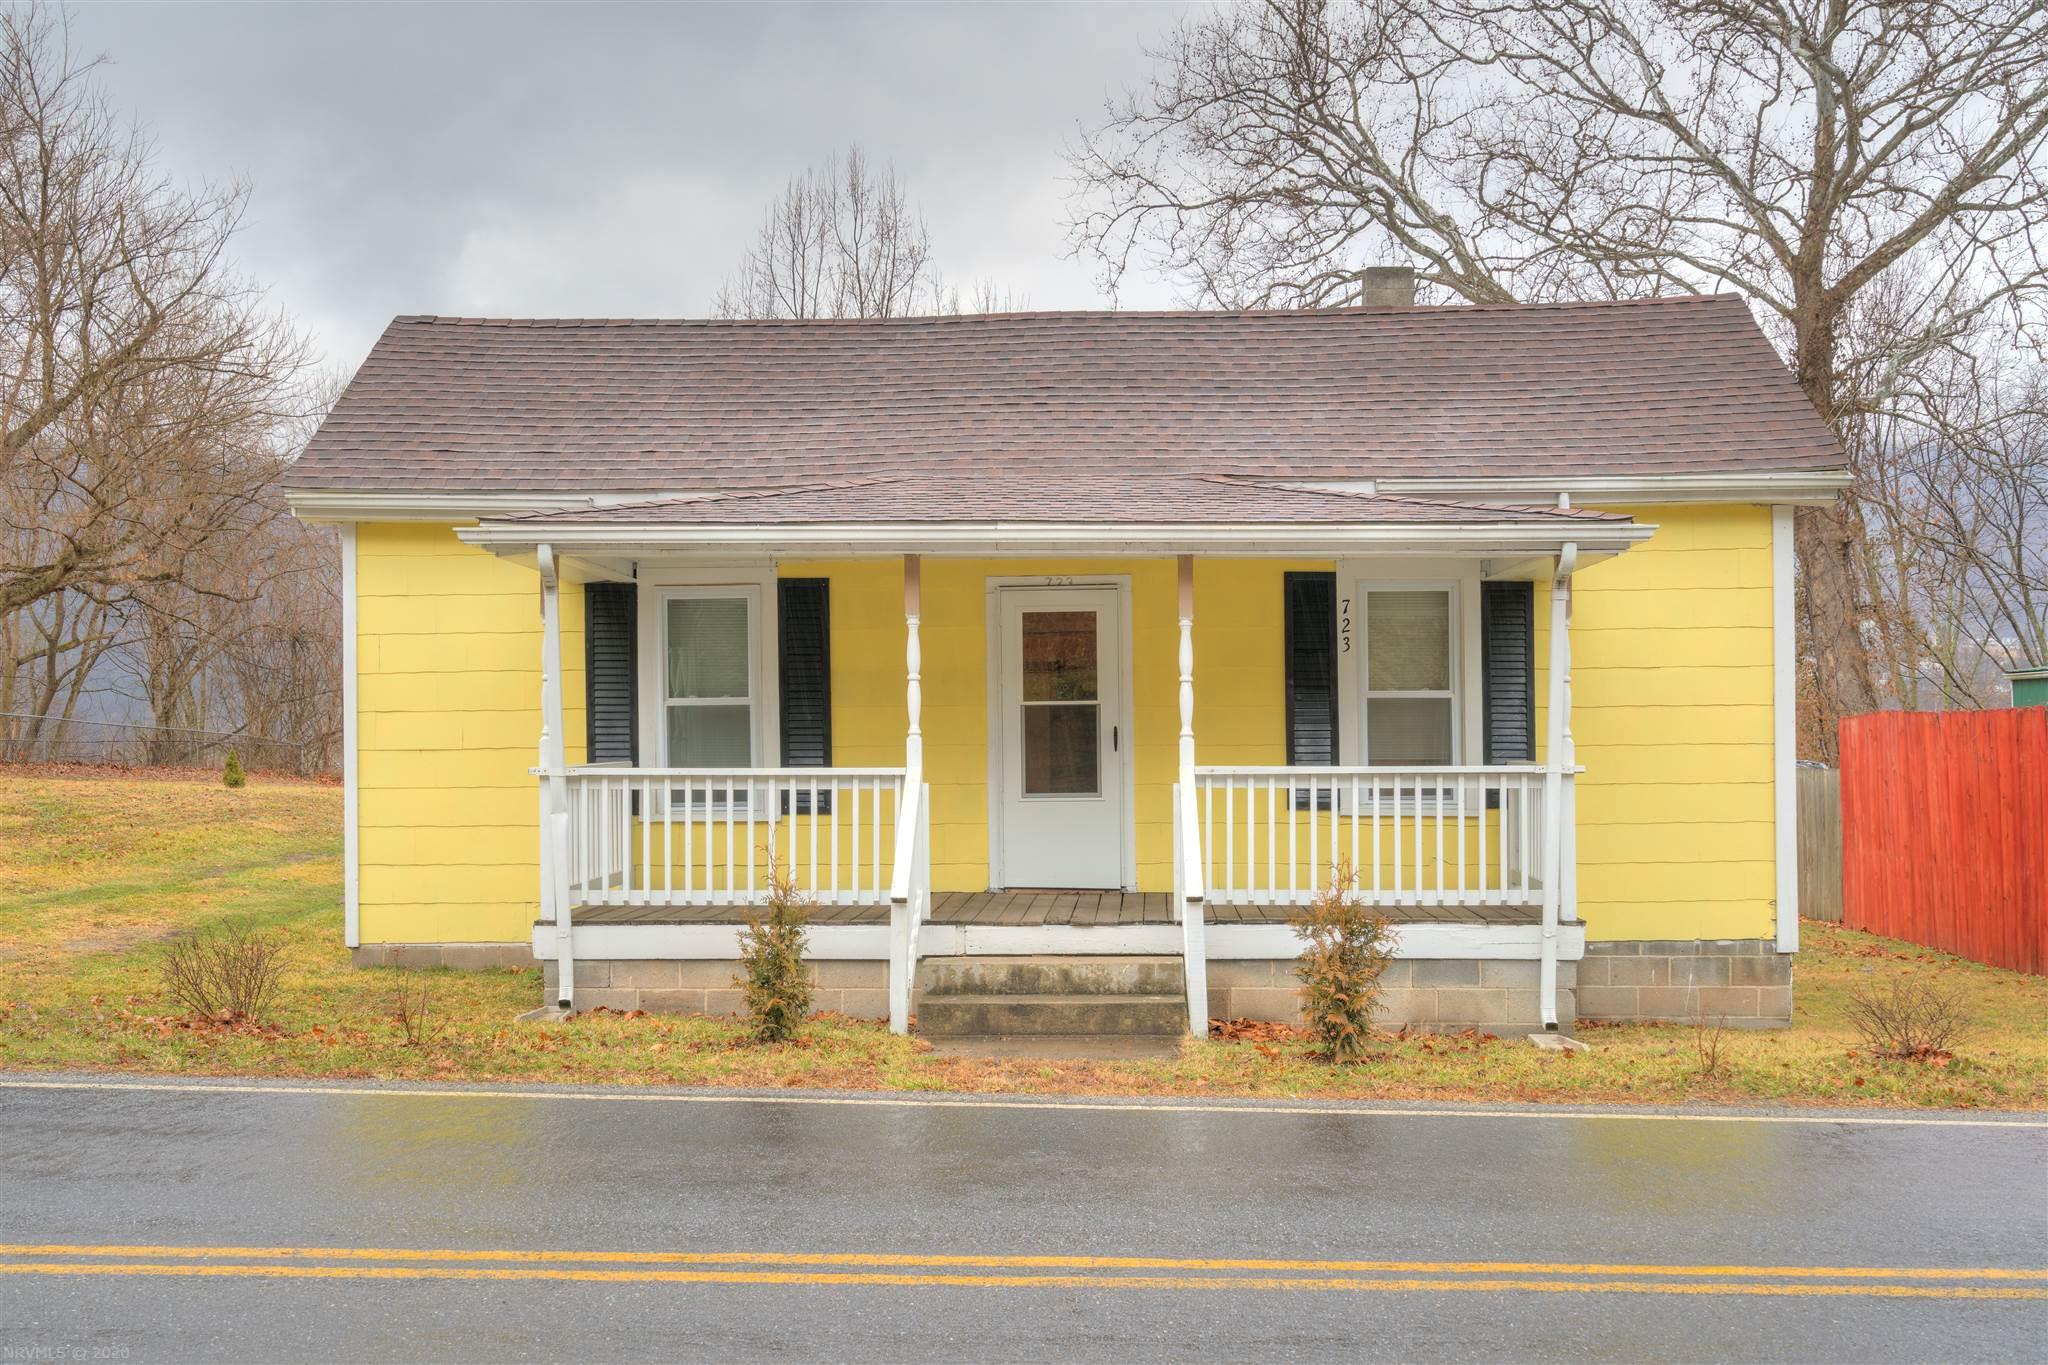 This Beautiful Bungalow home is offered with not one lot, but TWO. Perfectly placed just moments away from river front on Main St. in Narrows. This is equipped with 2 bedrooms and 1 bath, also a family room that could be repurposed as a 3rd bedroom. New paint inside and outside and a 8' privacy fences on both sides. Also a 12 x 8 shed equipped with shelves, perfect for large landscaping supplies. Be the first to use the brand new Water Heater and Washer-Dryer from this precious home.Don't hesitate, call and make an appointment today!